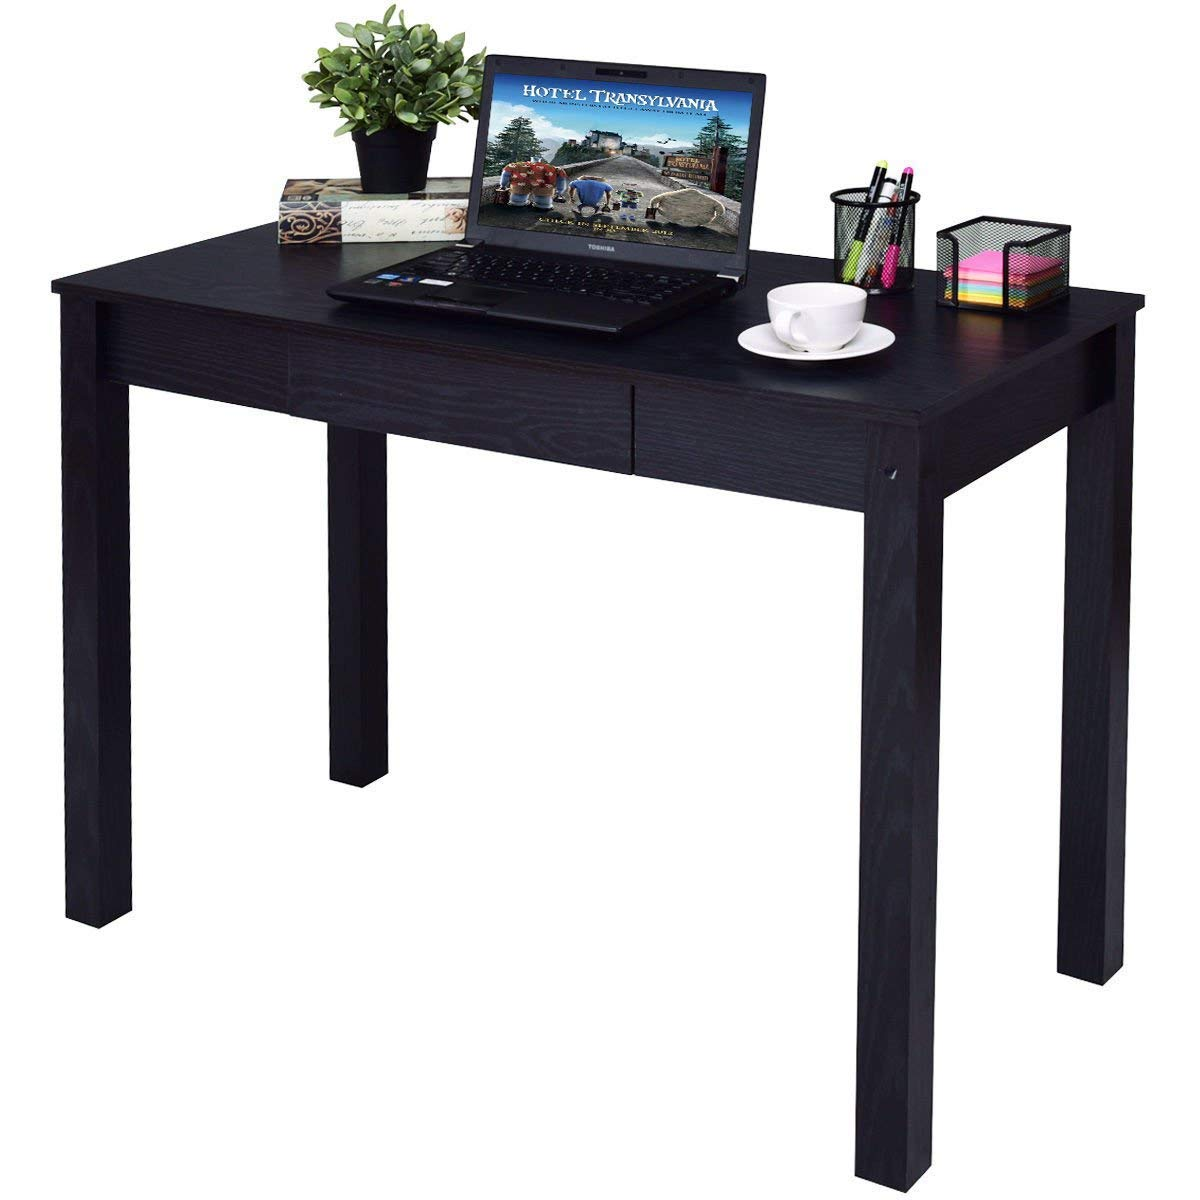 Tangkula Computer Desk, Writing Study Table, Home Office Compact Efficient Laptop PC Desk with Drawer, Wood Computer Workstation Writing Study Desk (Black)